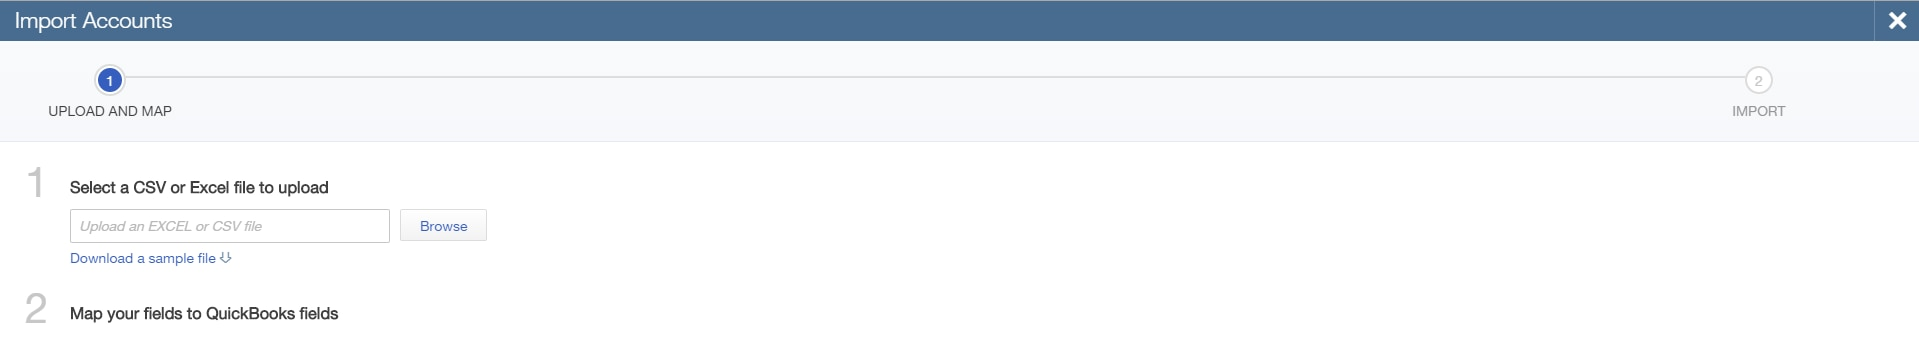 9. Import Accounts